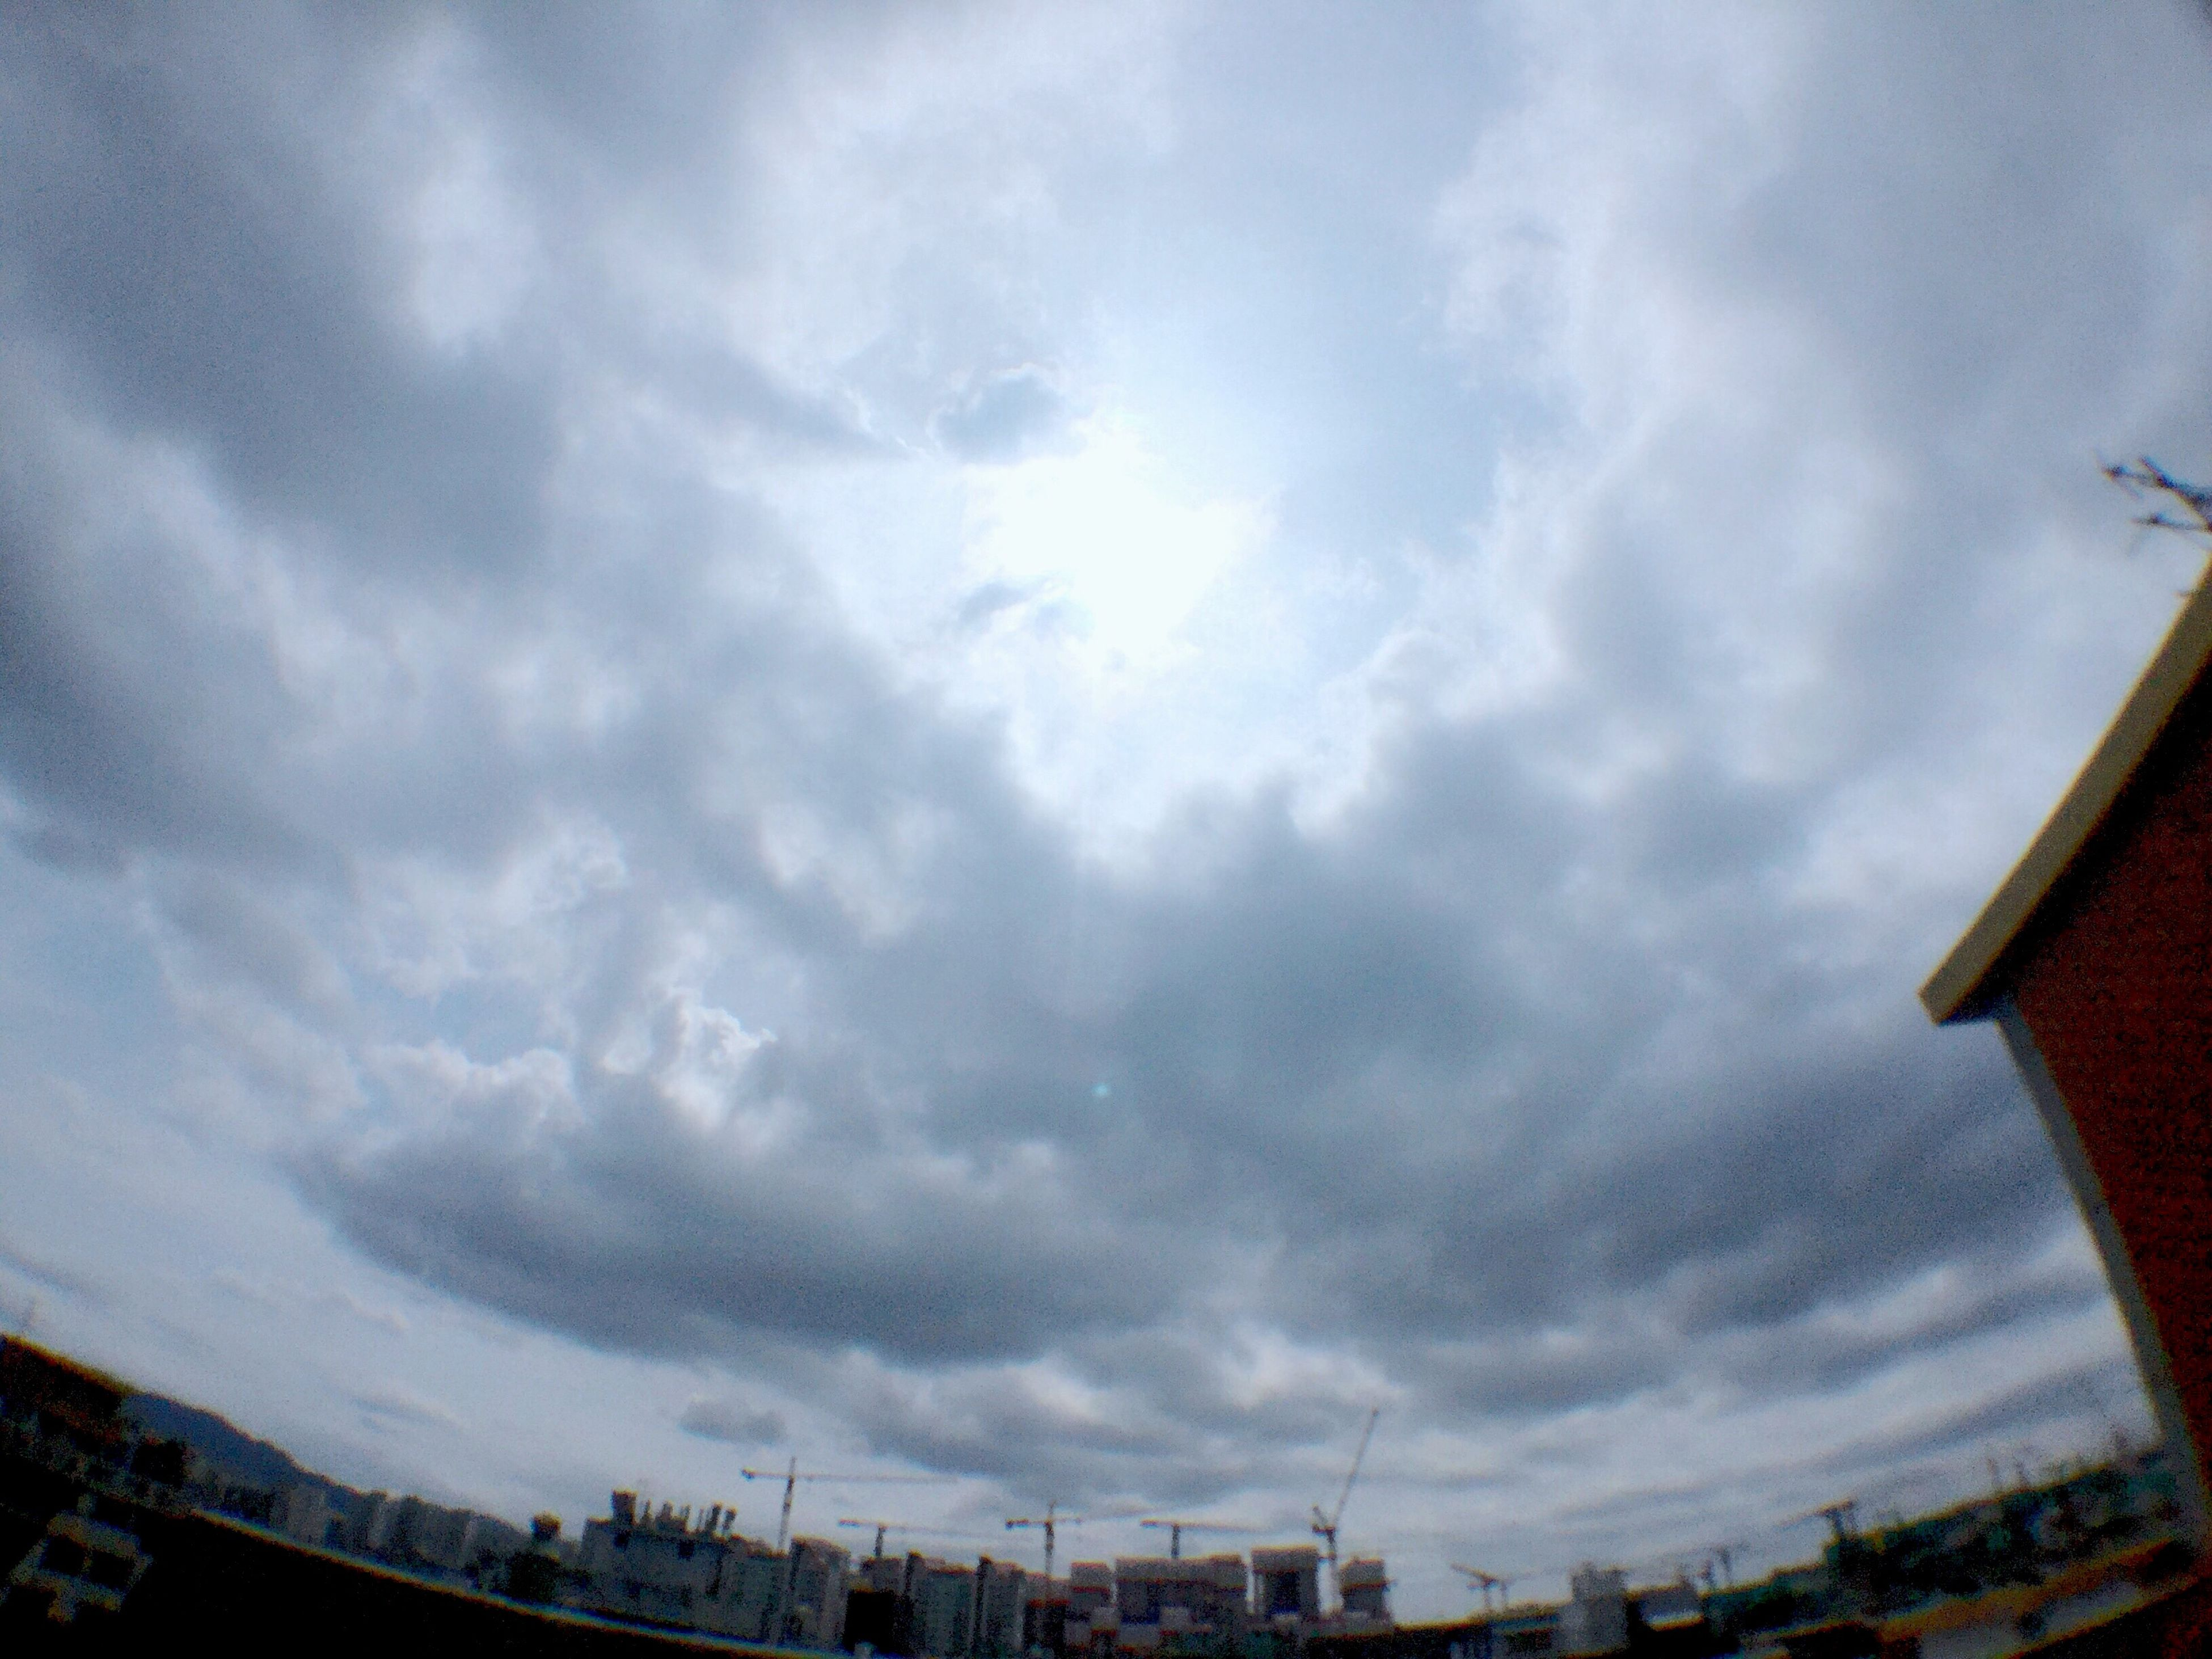 sky, cloud - sky, no people, low angle view, architecture, nature, outdoors, day, beauty in nature